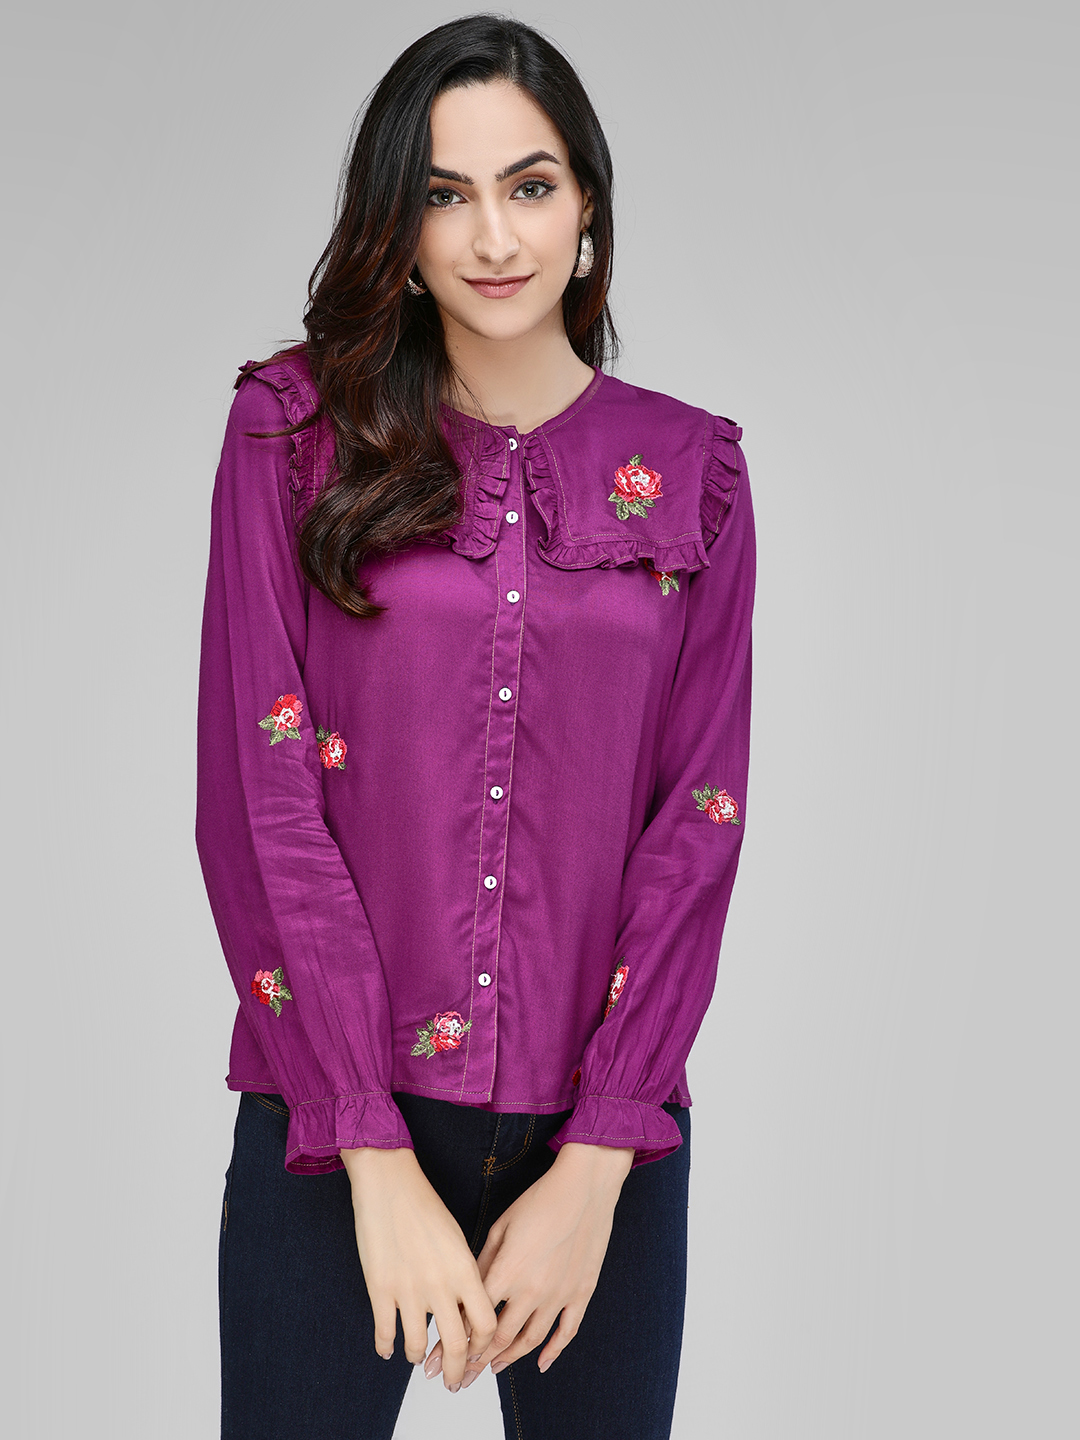 Rena Love Purple Frill Rose Embroidered Shirt 1